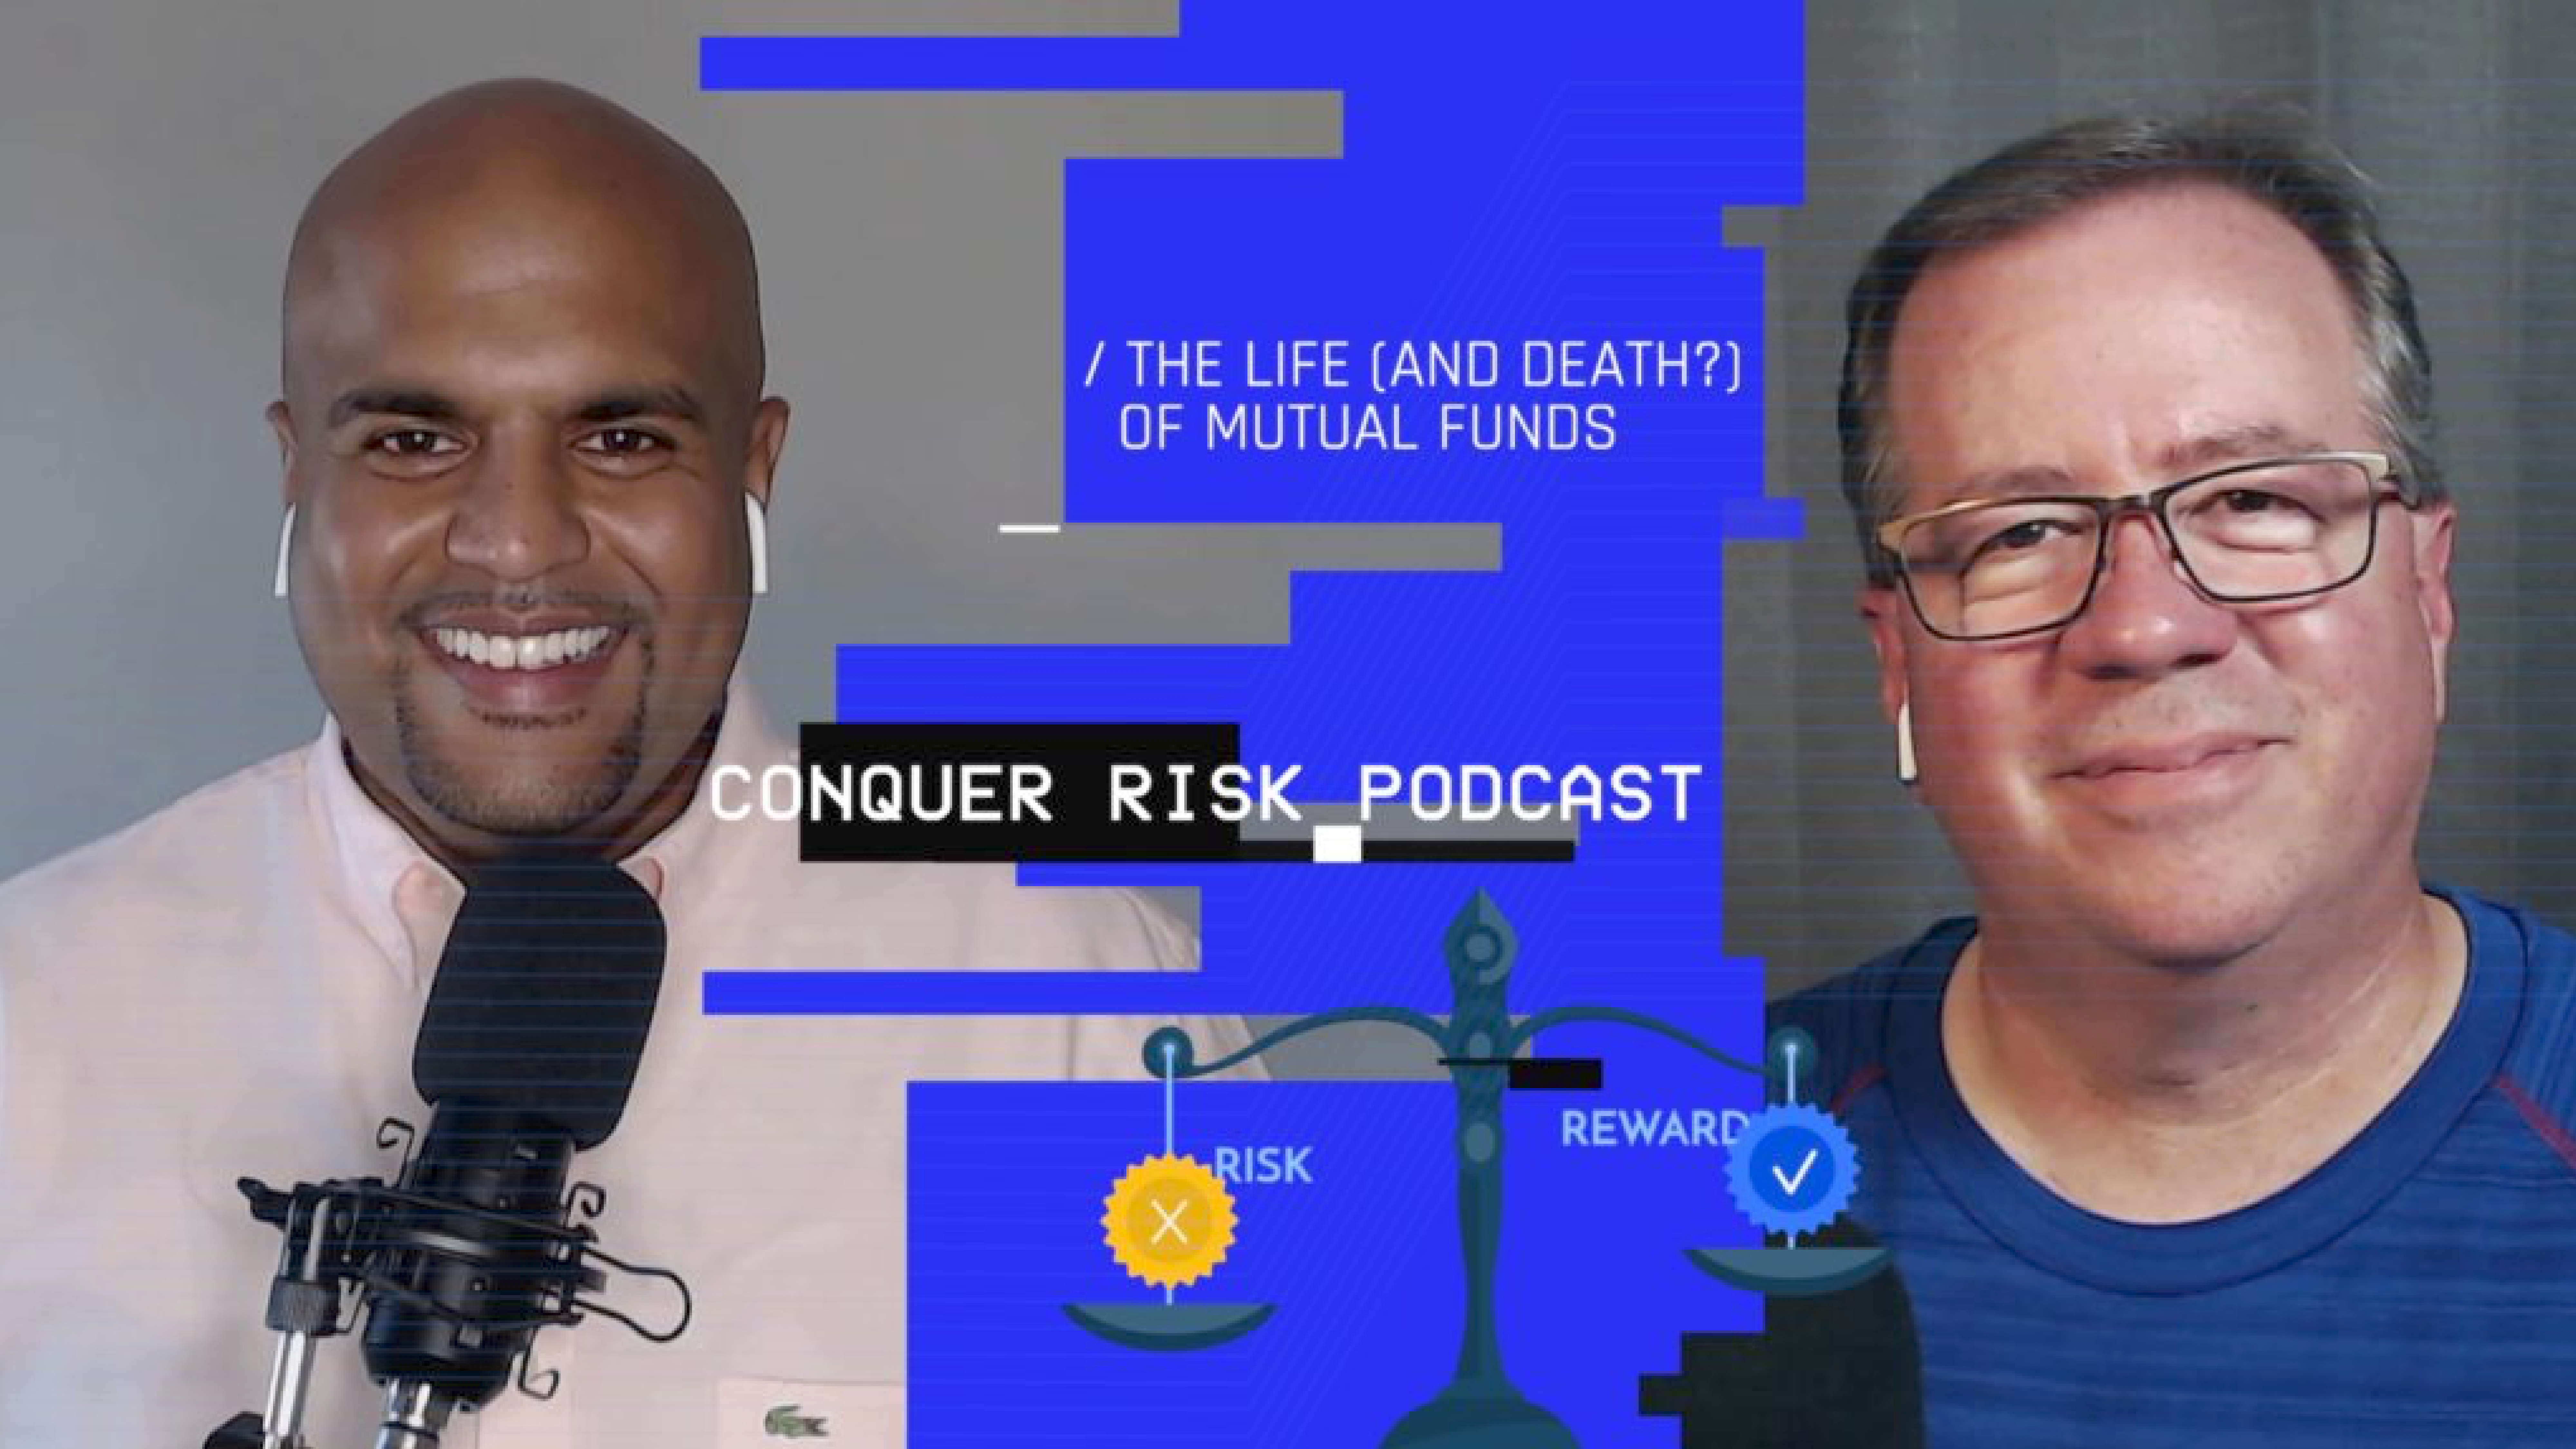 The Life (and Death?) of Mutual Funds (S1 E16)